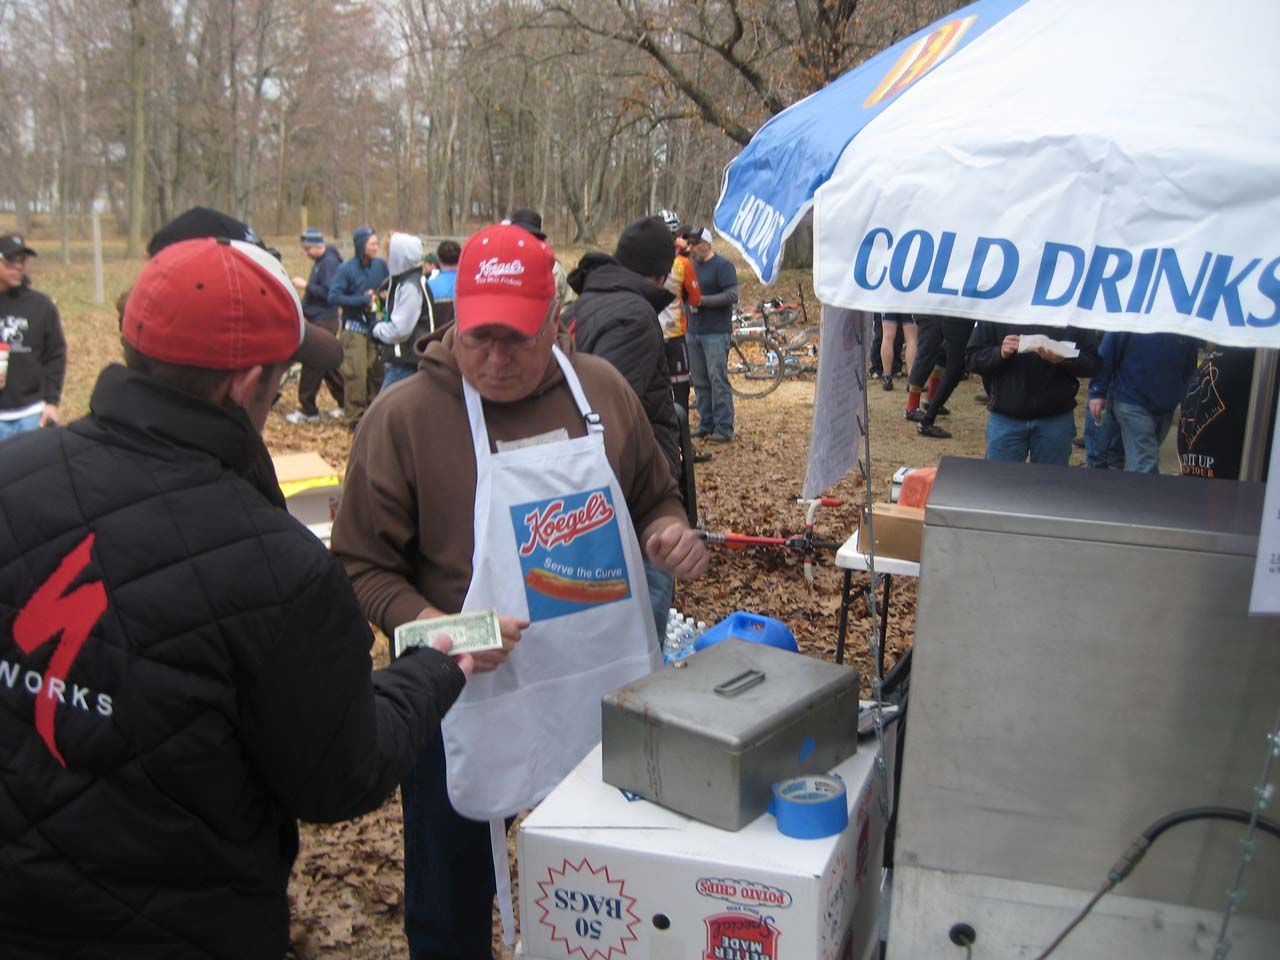 Chili dogs were a welcome sight to some weary racers. ? Brian Hancock